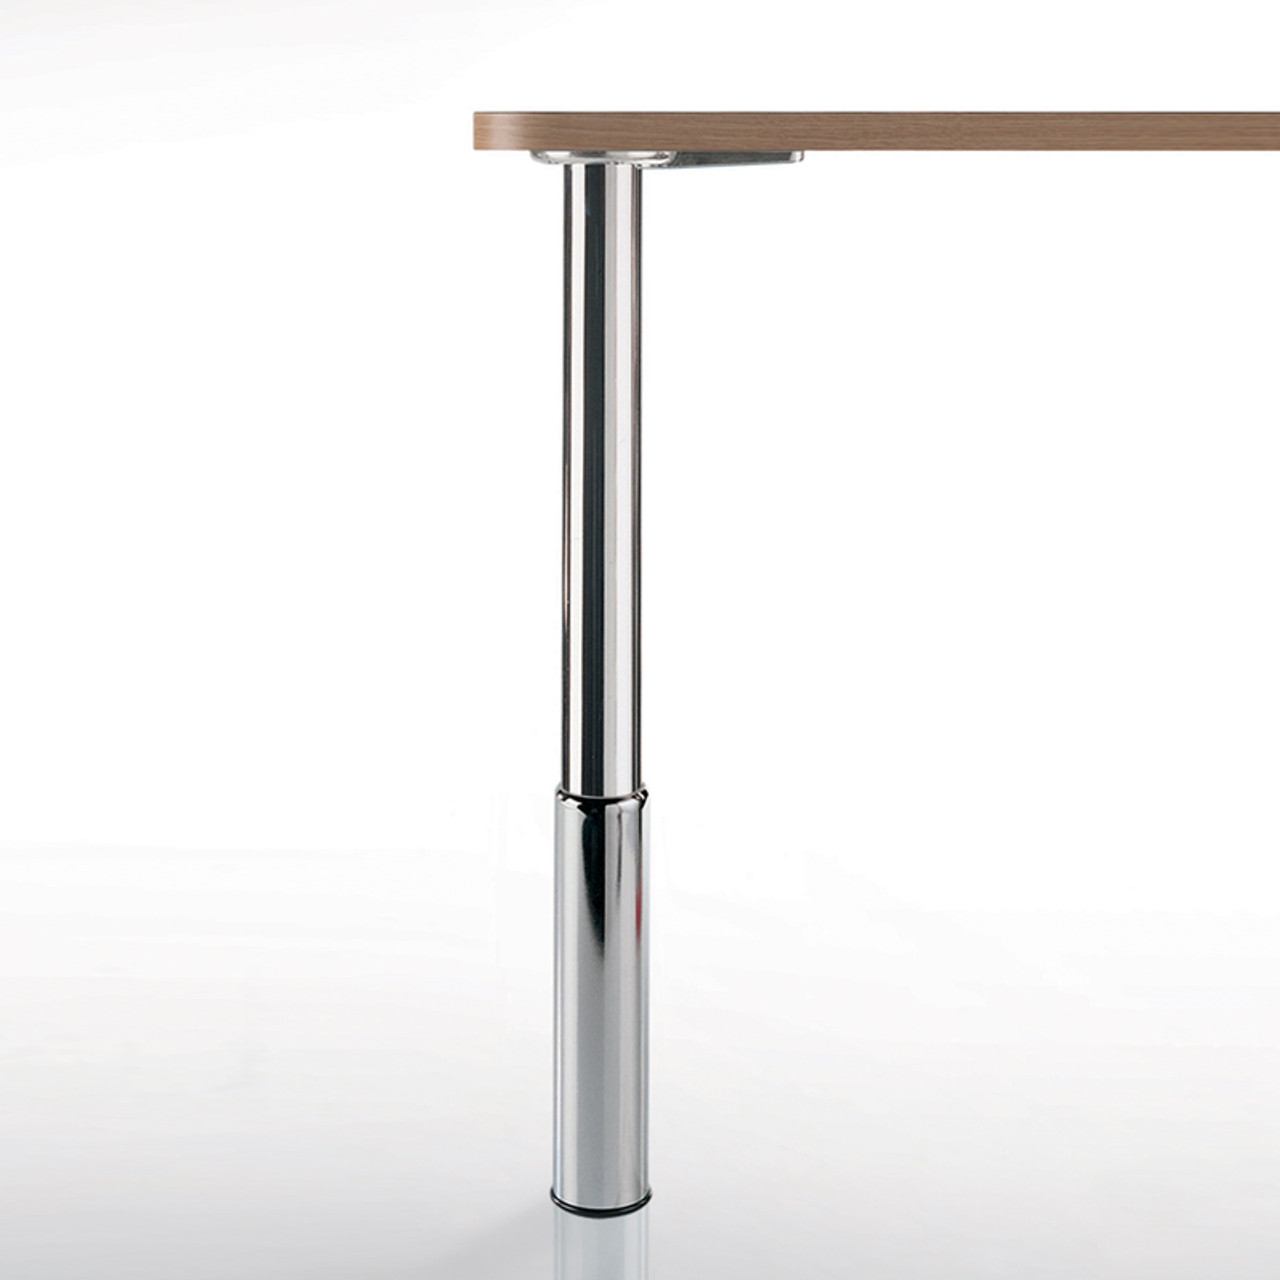 "Studio Telescoping Table Legs, 24"" - 31"", 2'' diameter leg 7'' adjustable foot - replacementtablelegs.com"